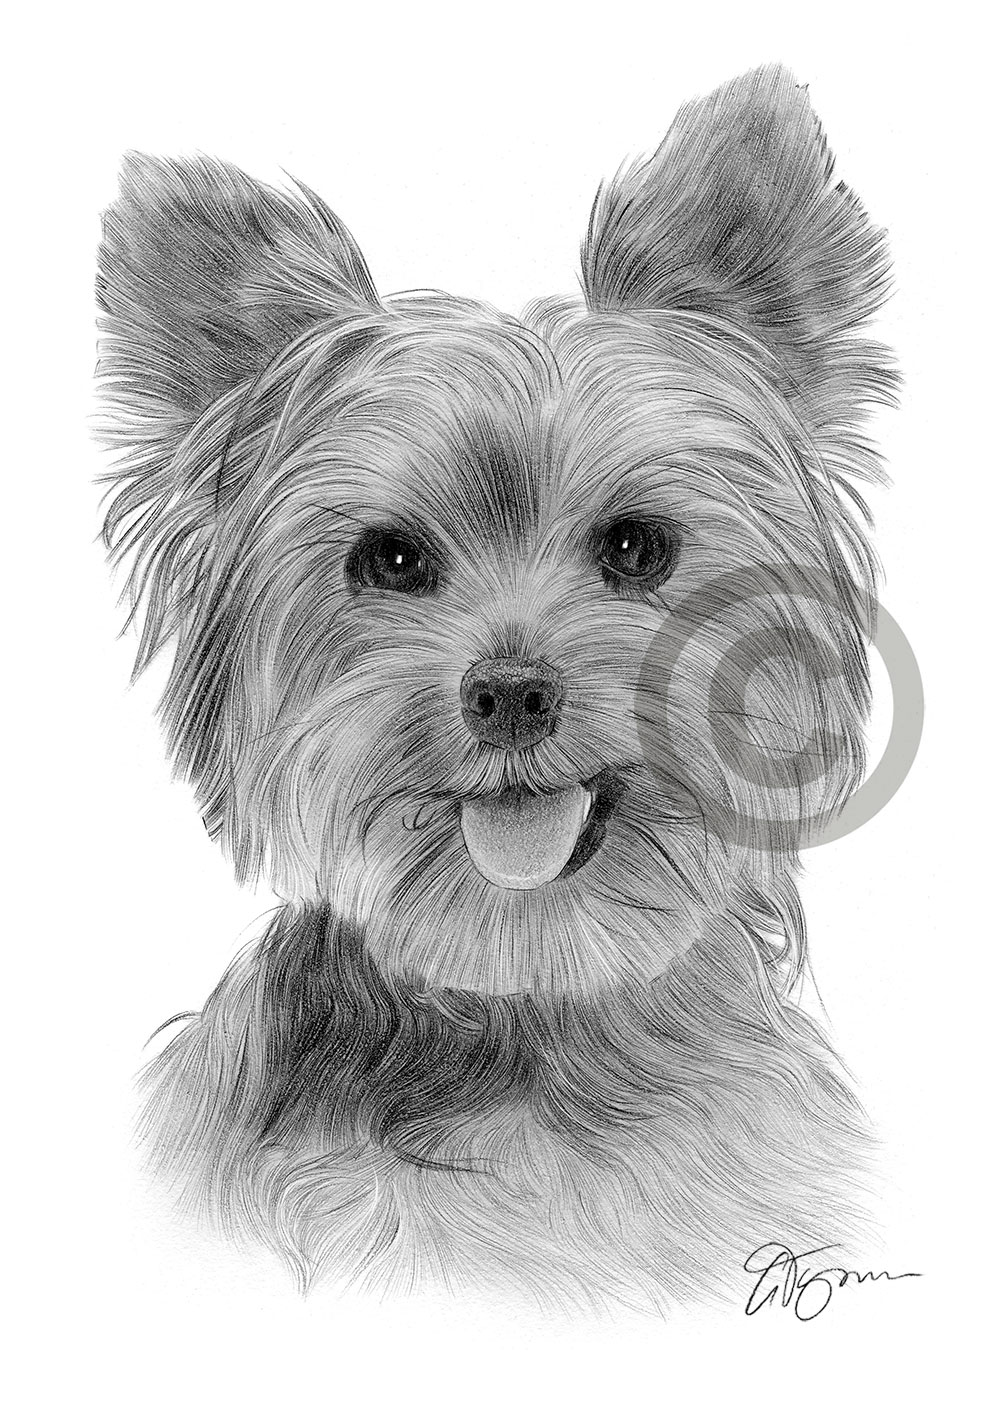 Yorkie pencil drawing by artist Gary Tymon